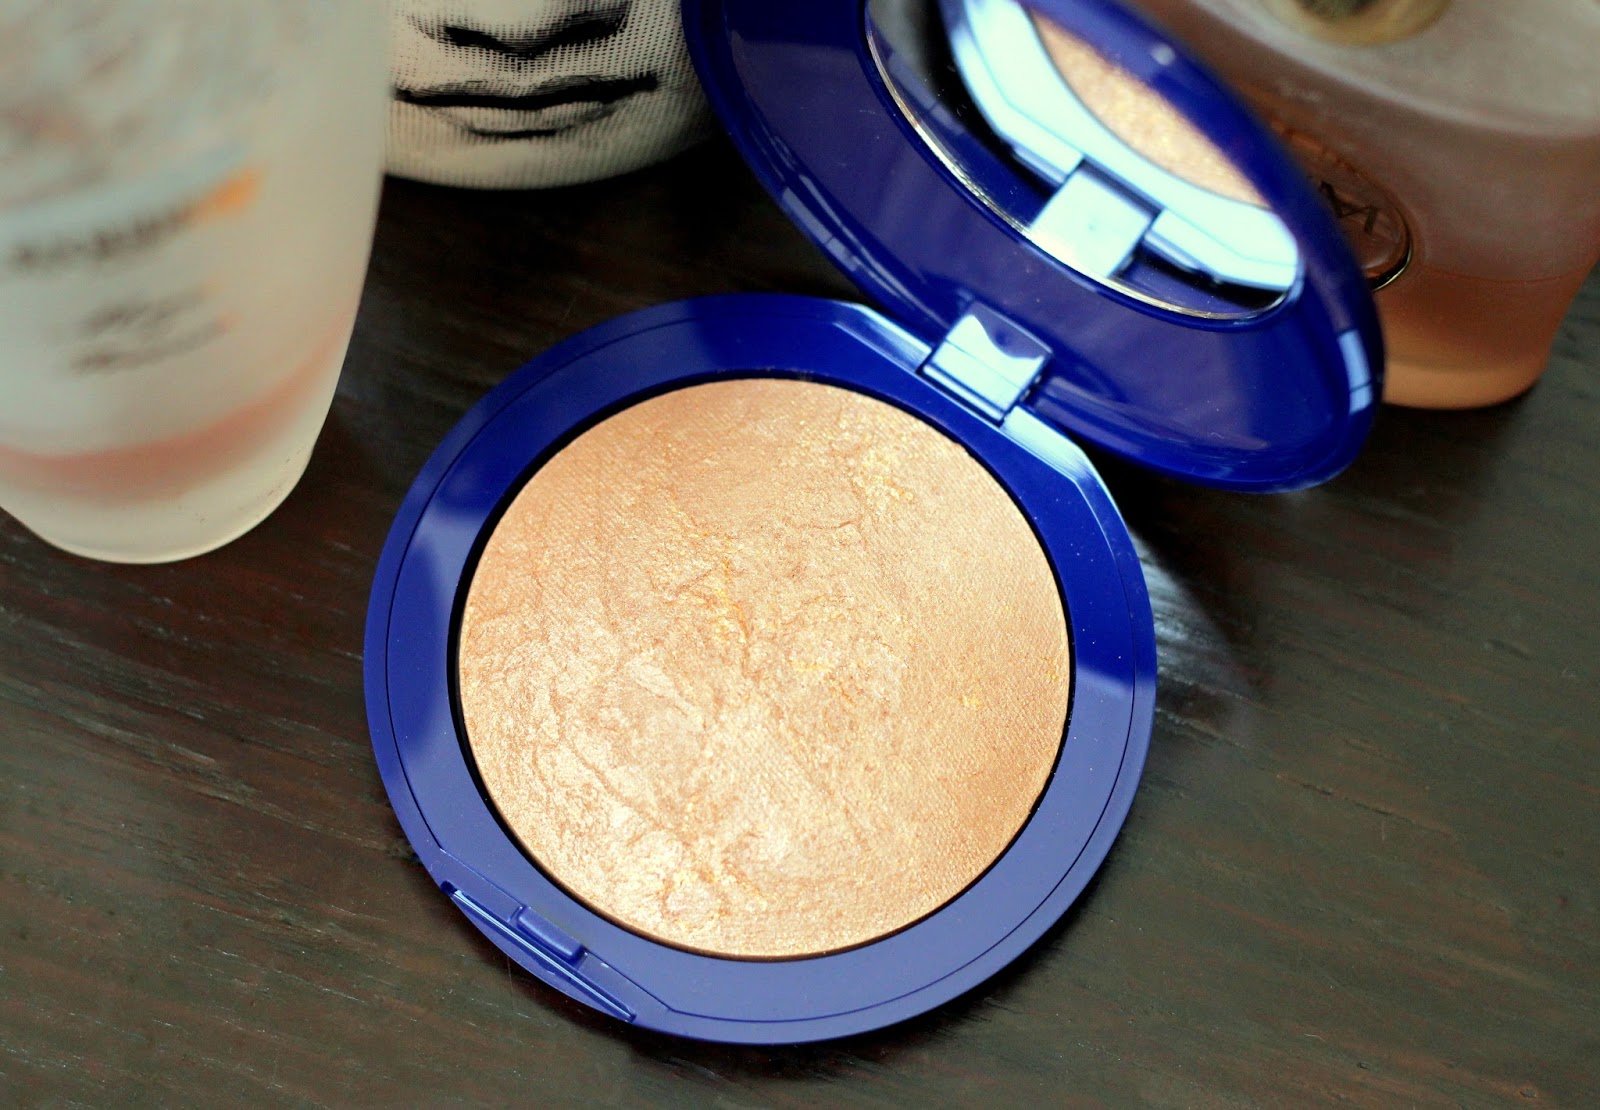 Elizabeth Arden's Pure Finish Summer Escape Bronzing Powder Review